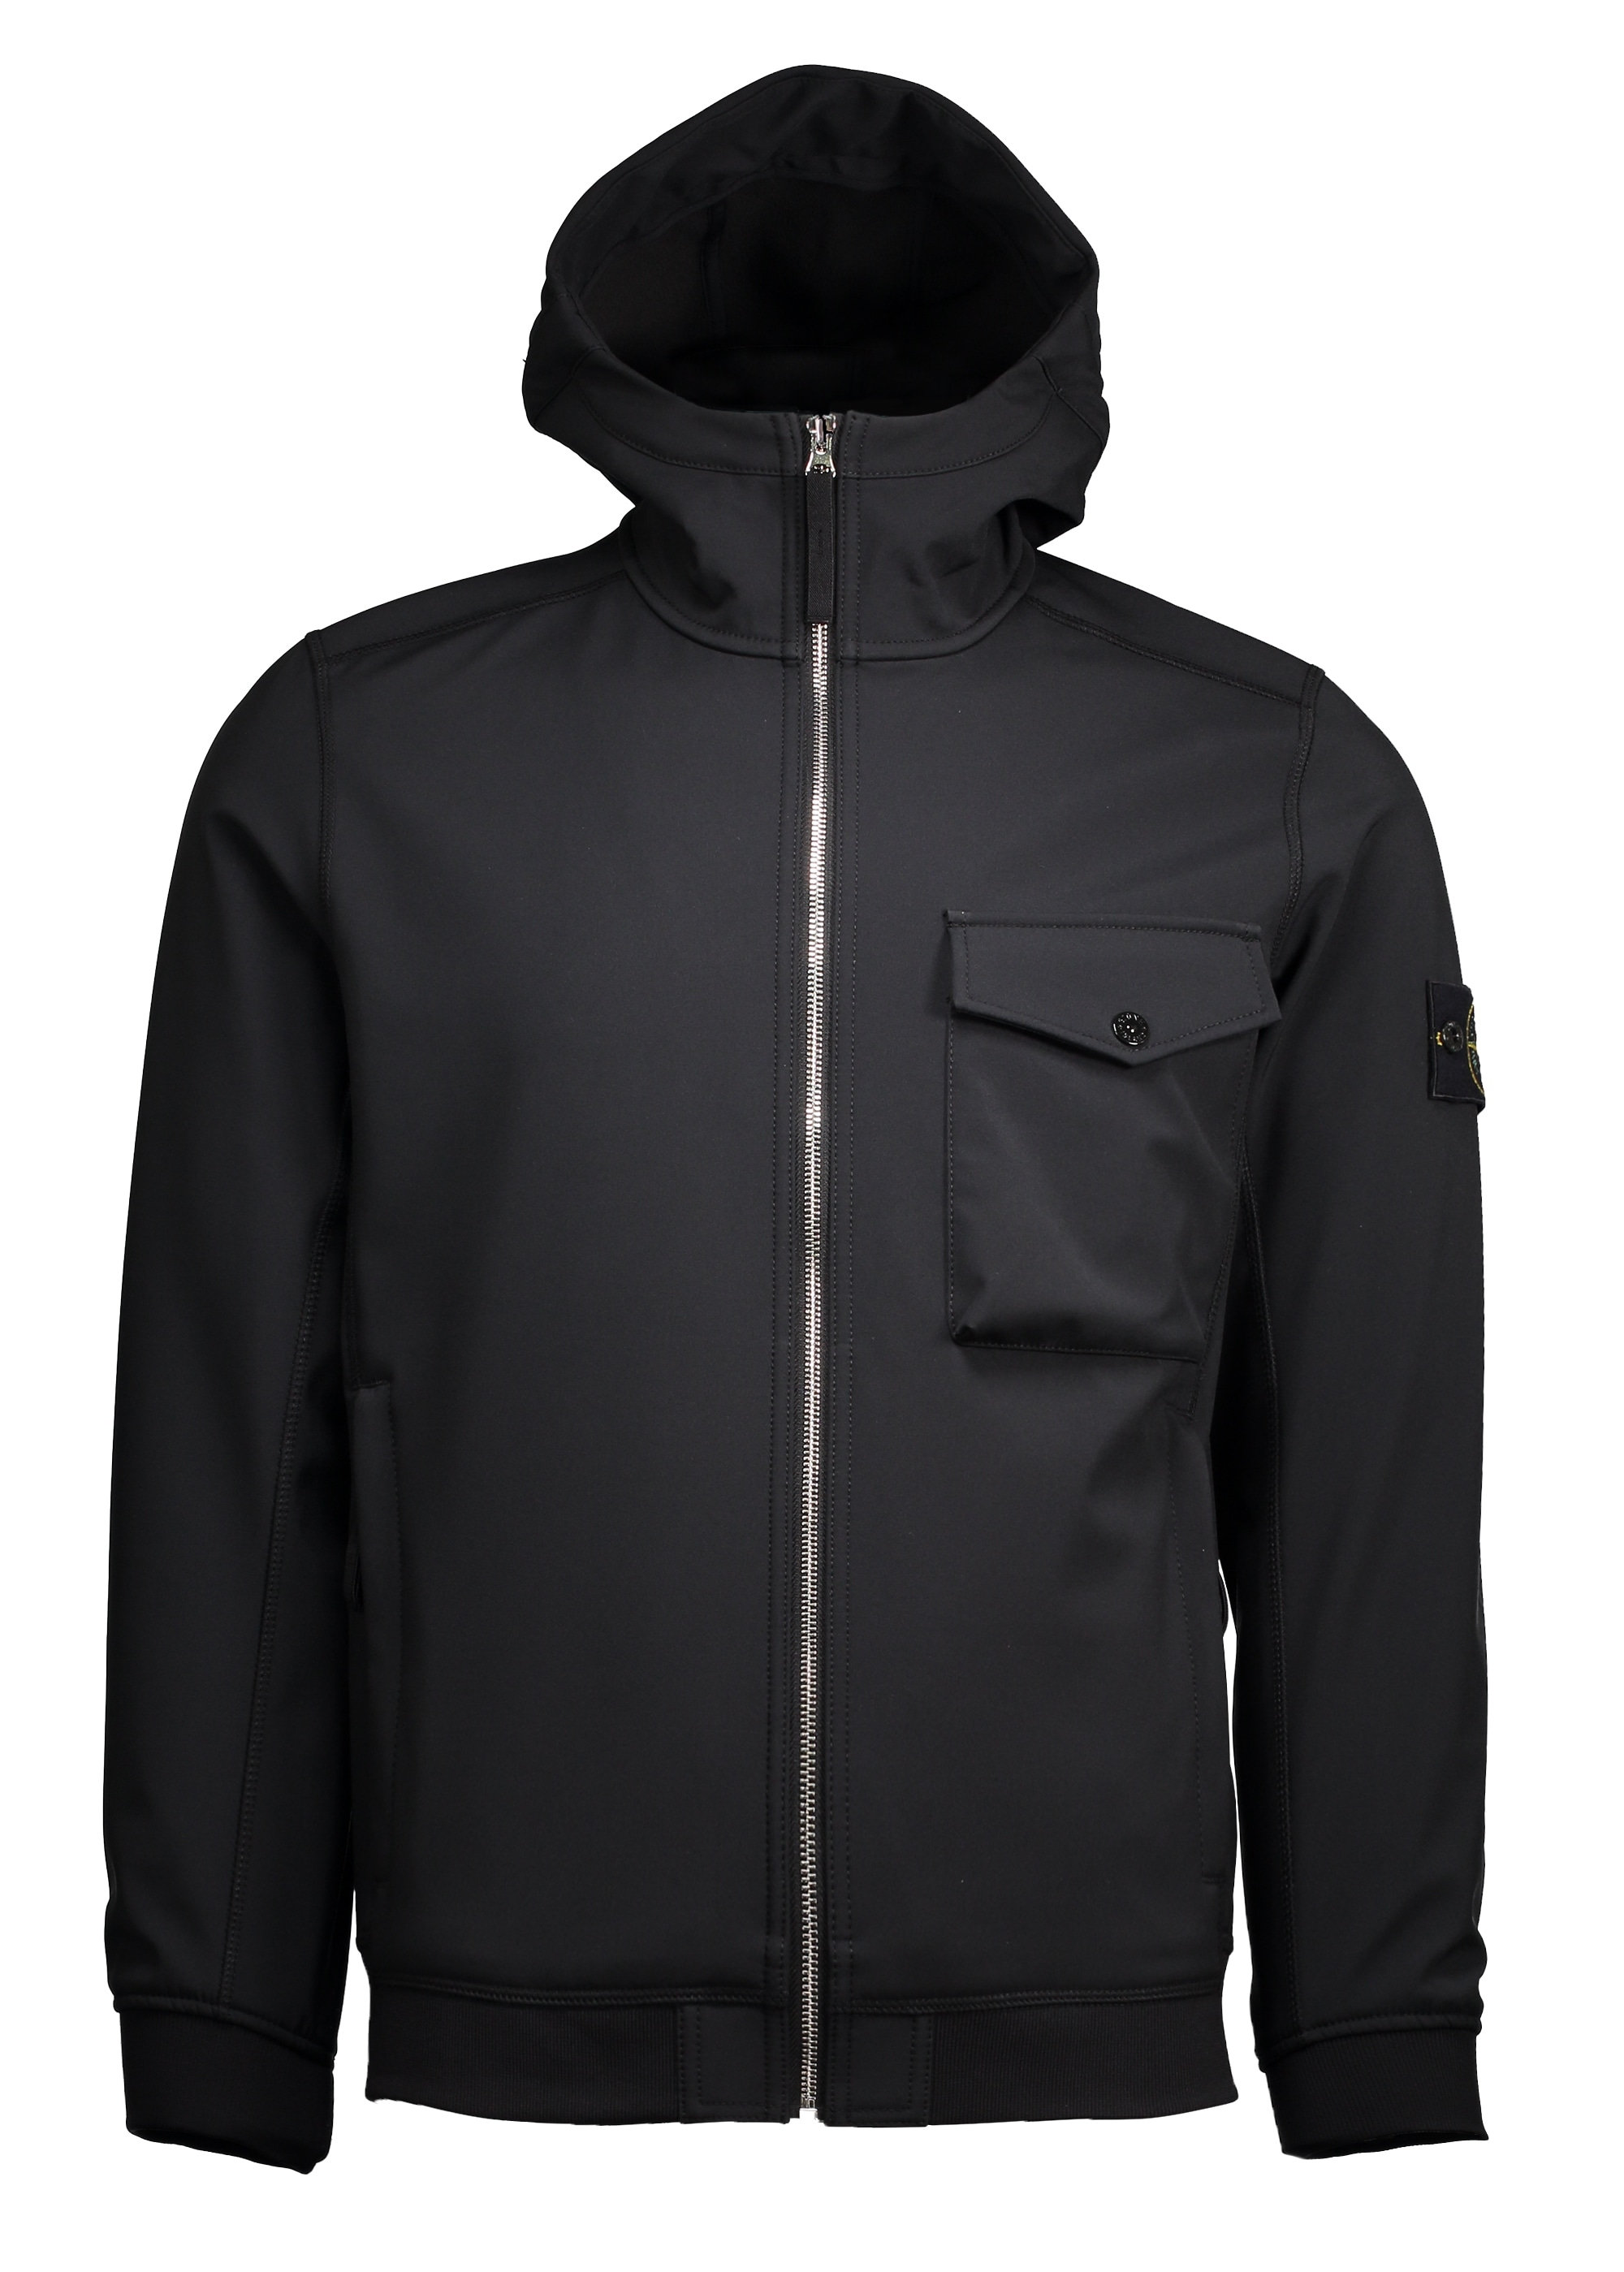 Stone Island Soft Shell R Jacket Black Triads Mens From Triads Uk